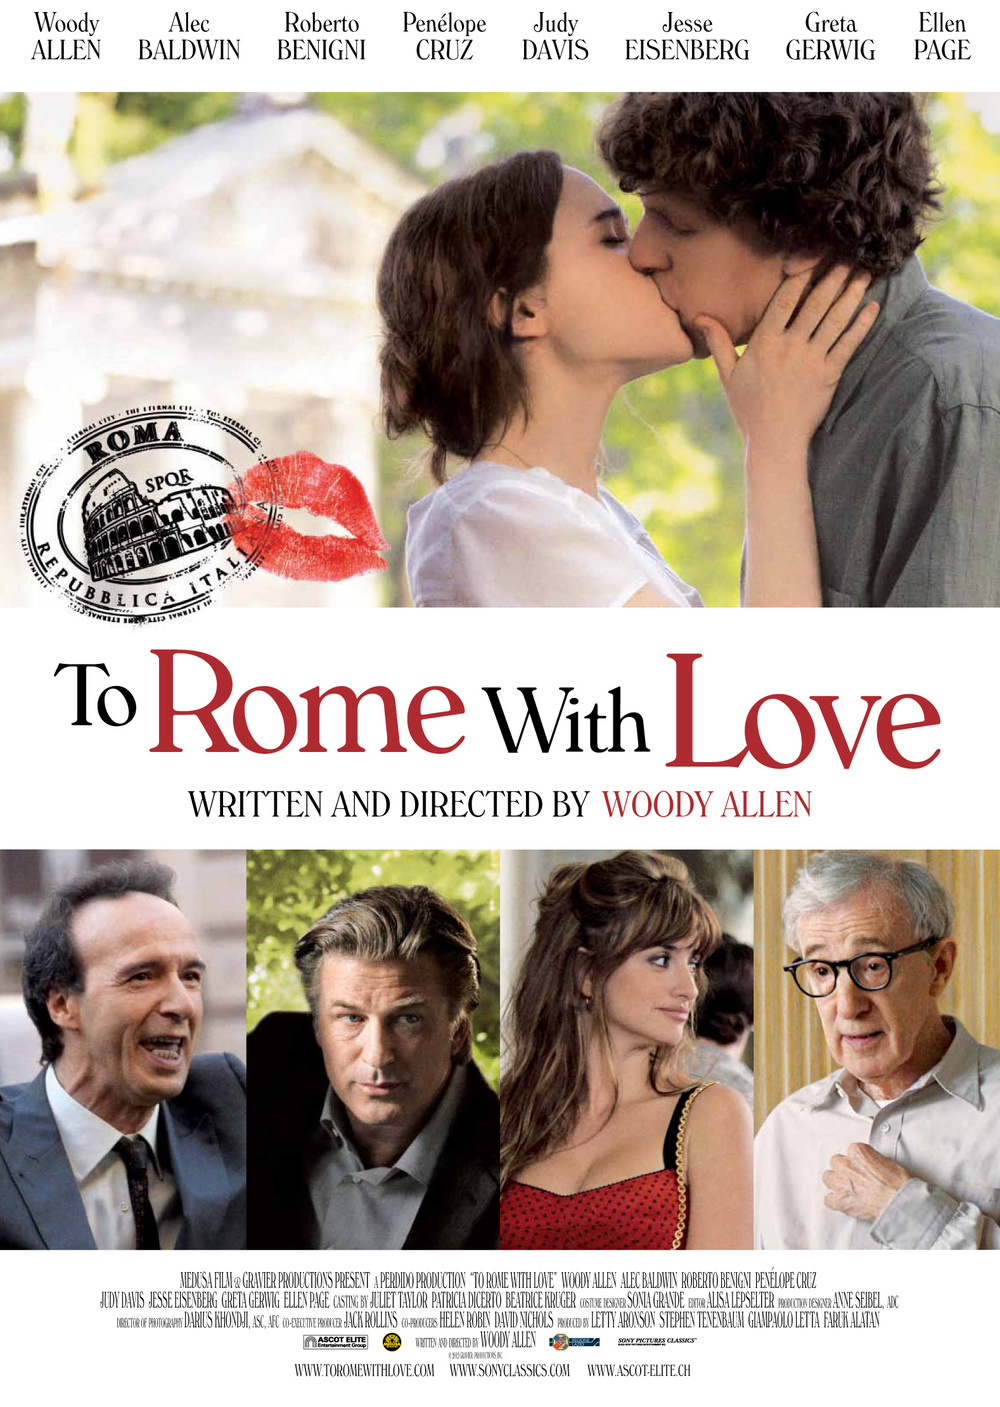 To-Rome-With-Love-poster.jpg